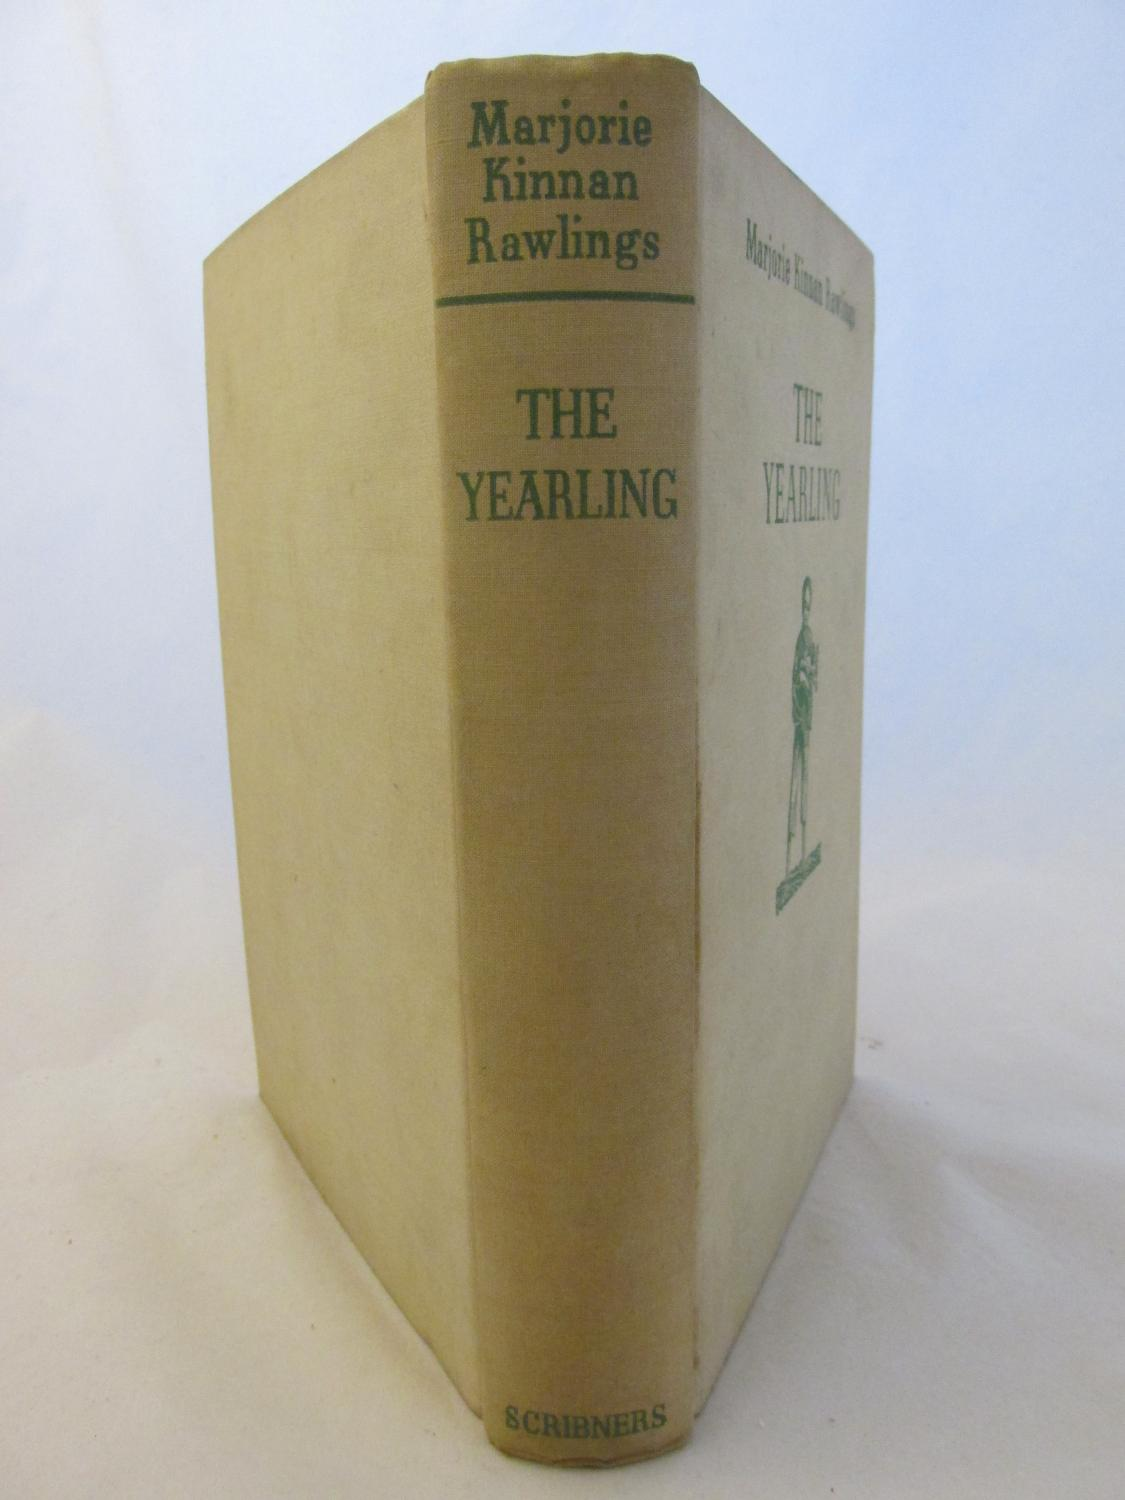 The Yearling: Marjorie Kinnan Rawlings